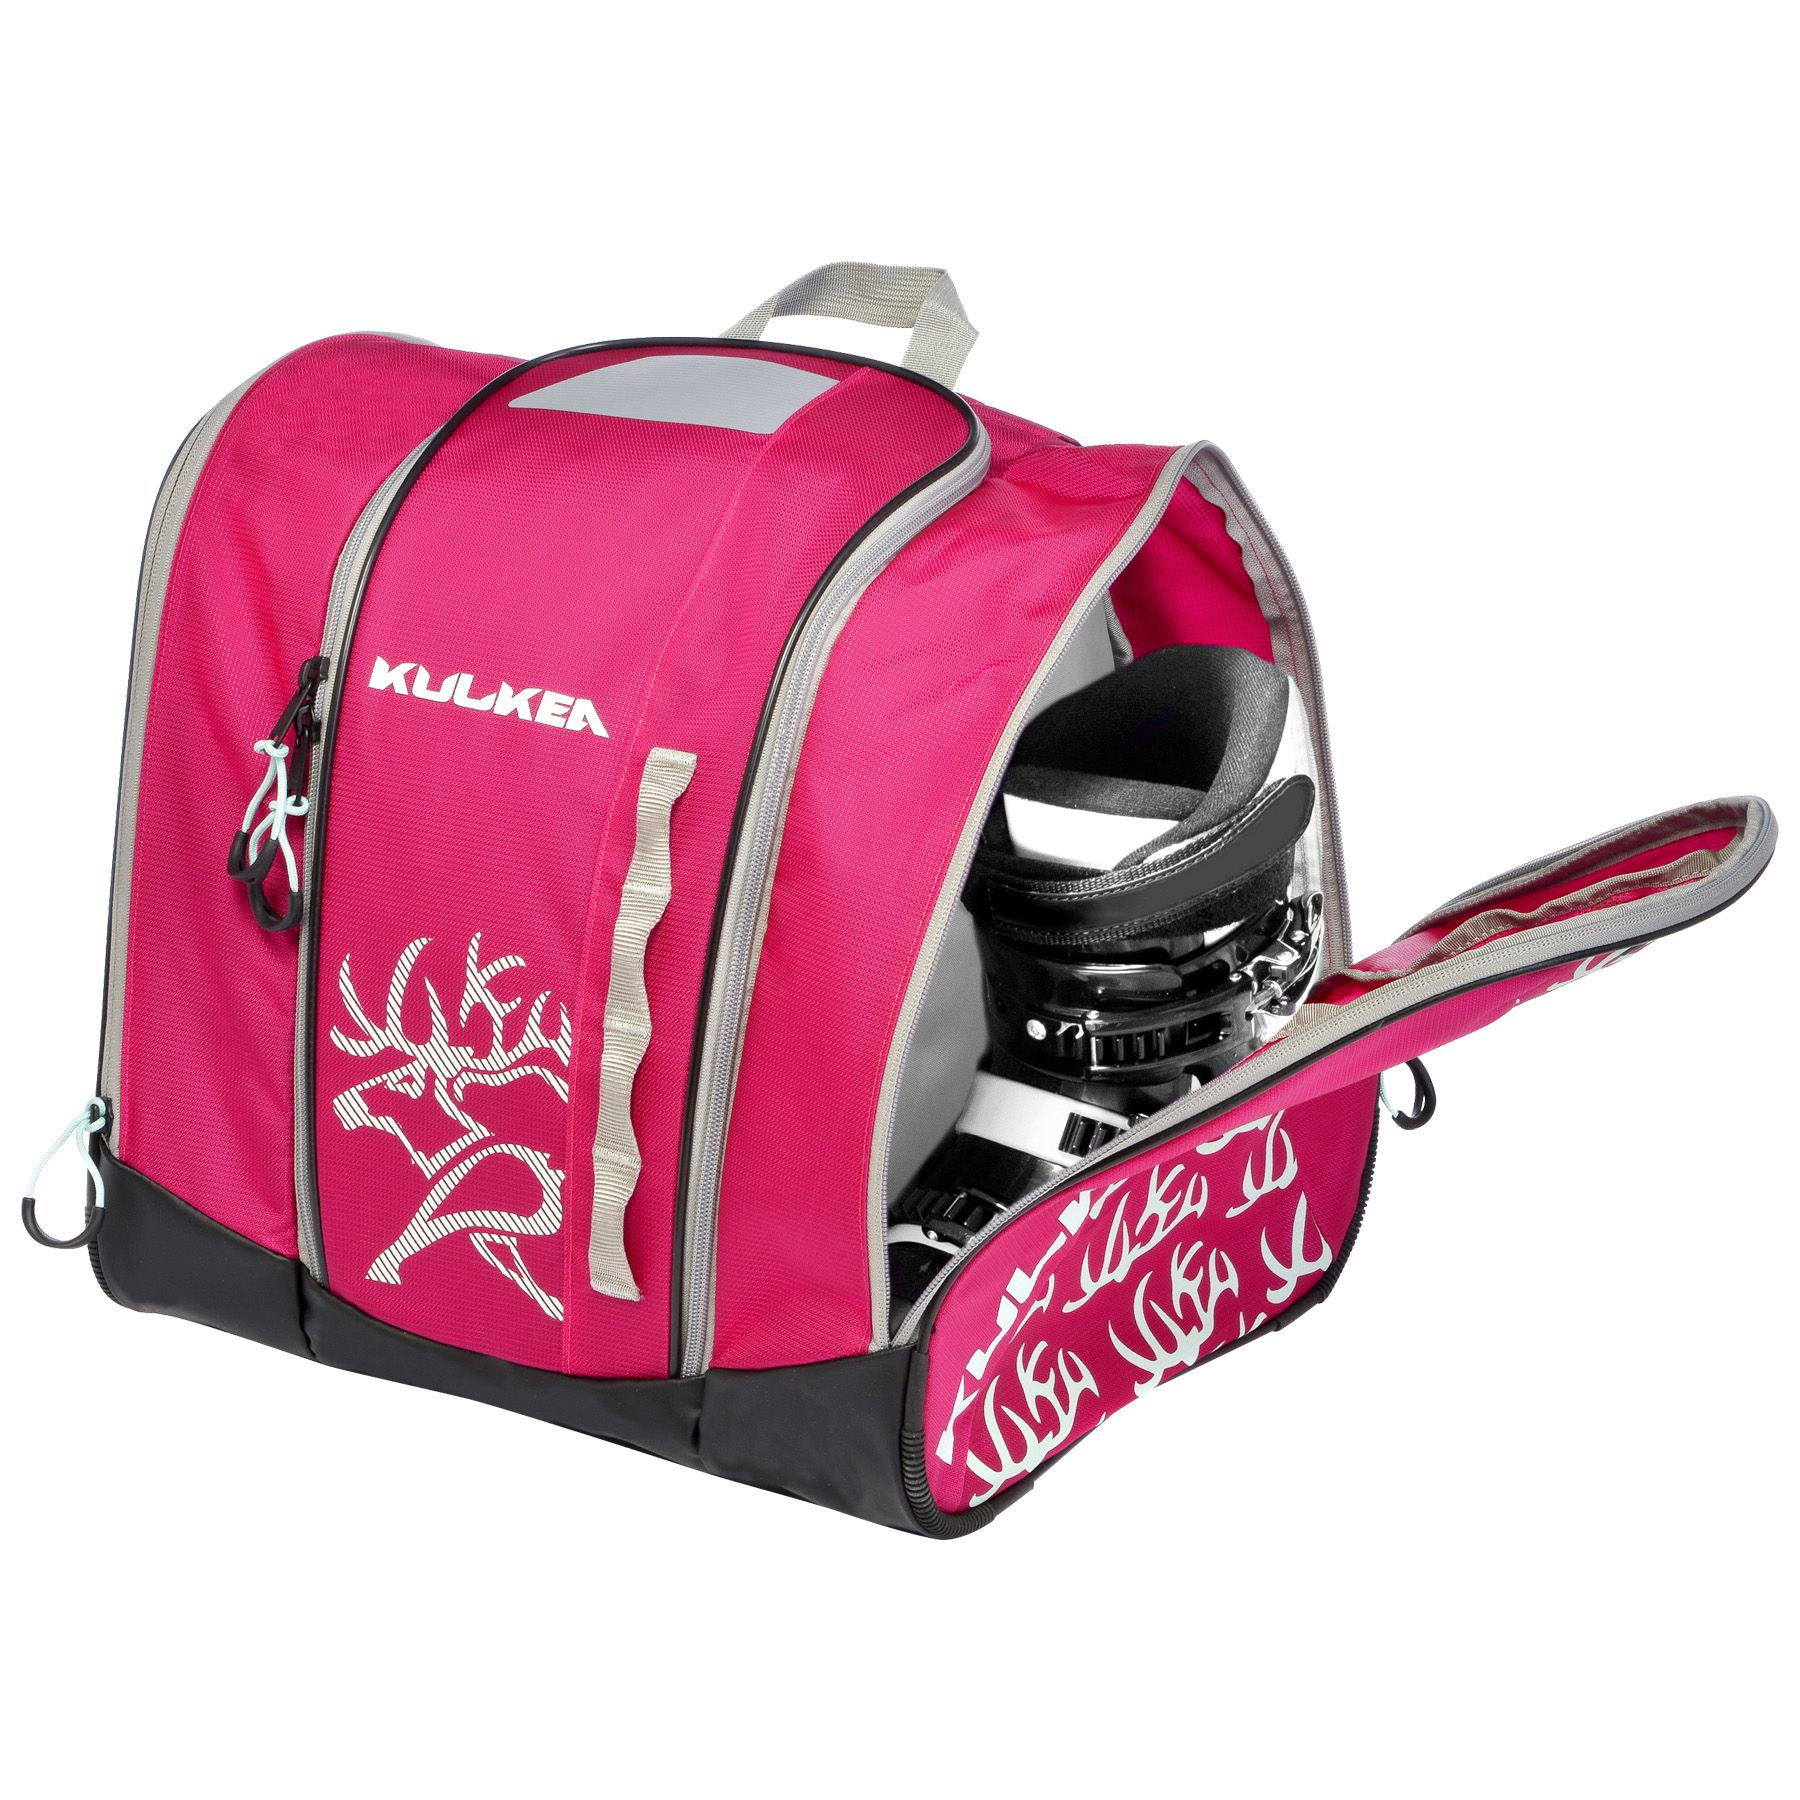 Kulkea Sd Star 32l Kids Ski Boot Bag Designed For S Is The Children Love To Carry 2 Side Located Pockets